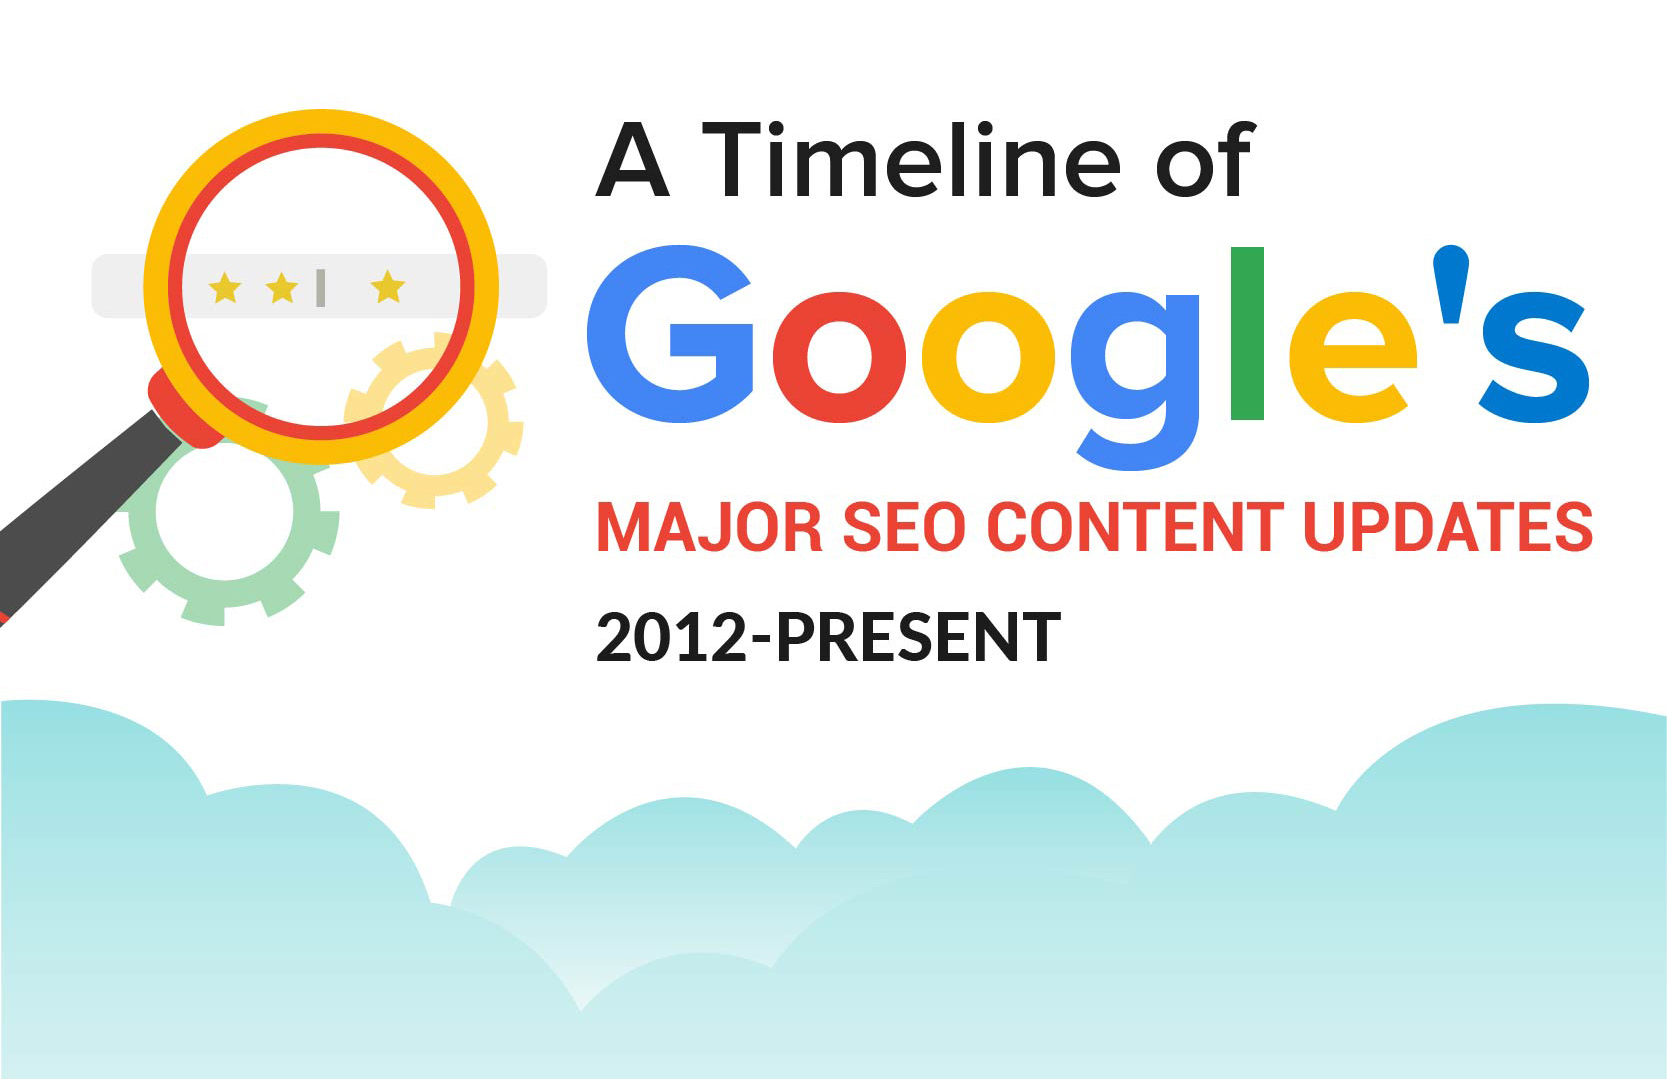 Infographic: A Timeline History of Google's Major SEO Content Updates (An Actionable Retrospective for Users, Publishers, and Content Creators)